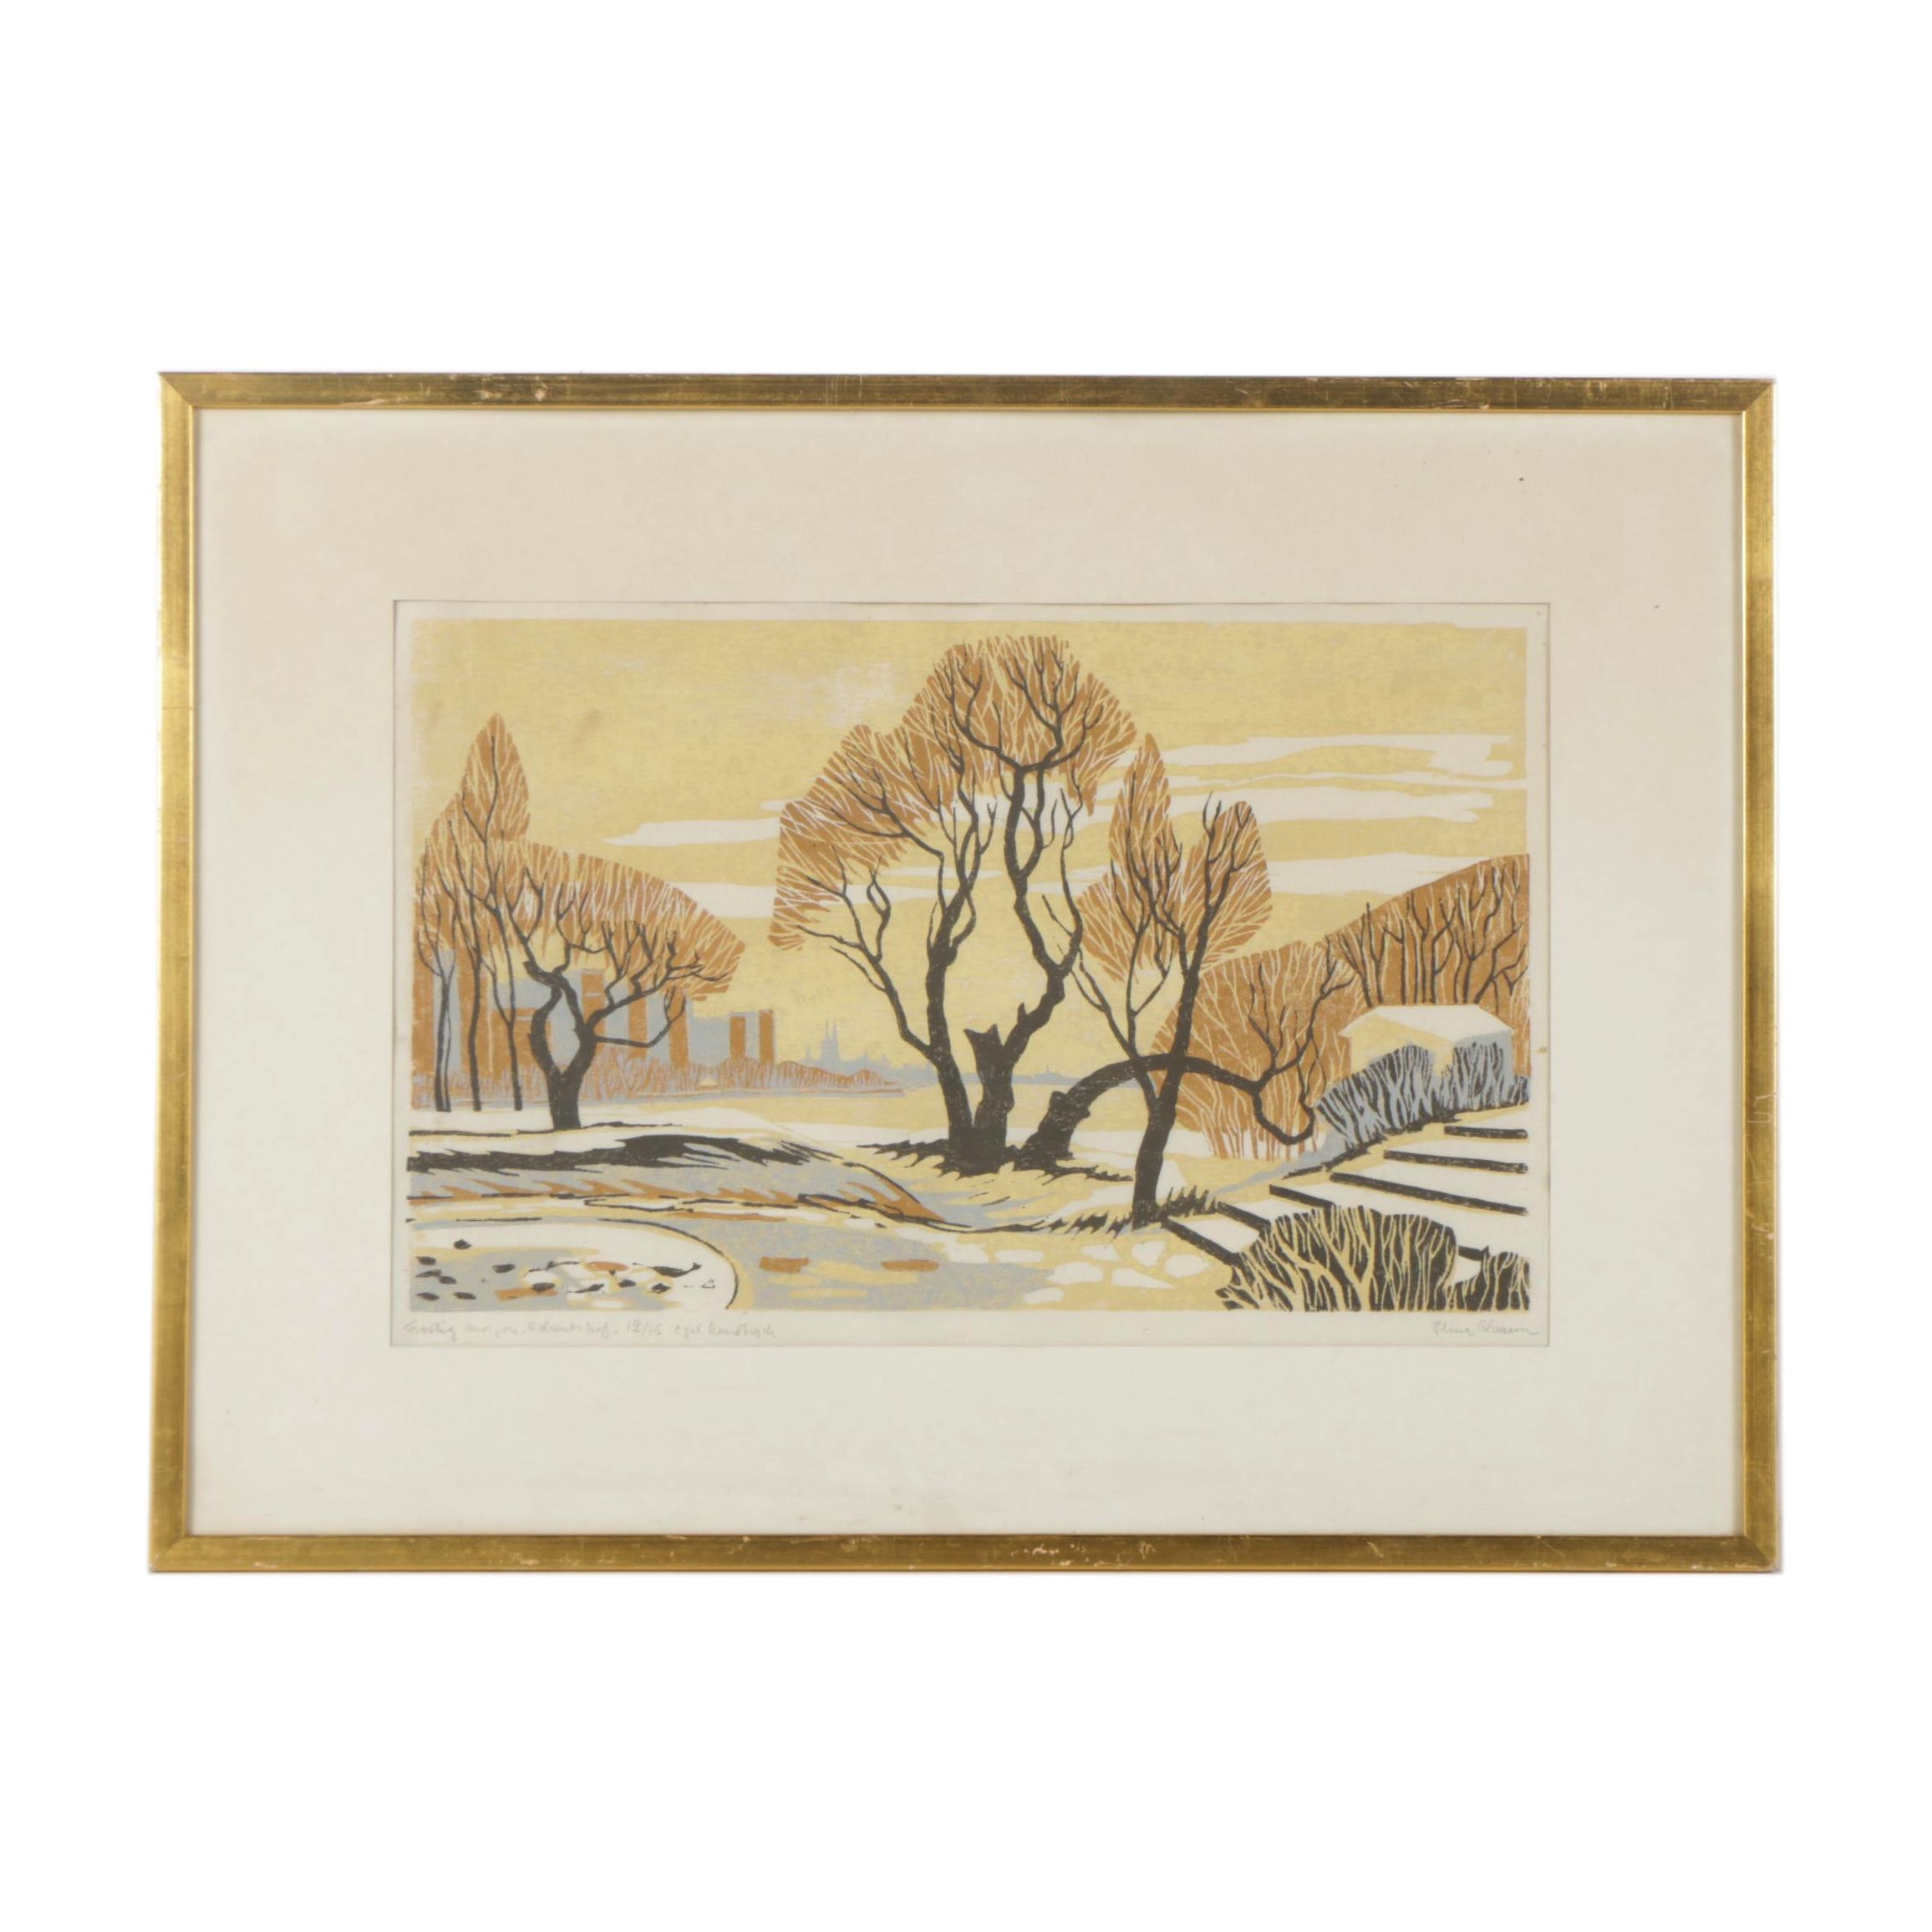 Limited Edition Linocut of Wooded Scene